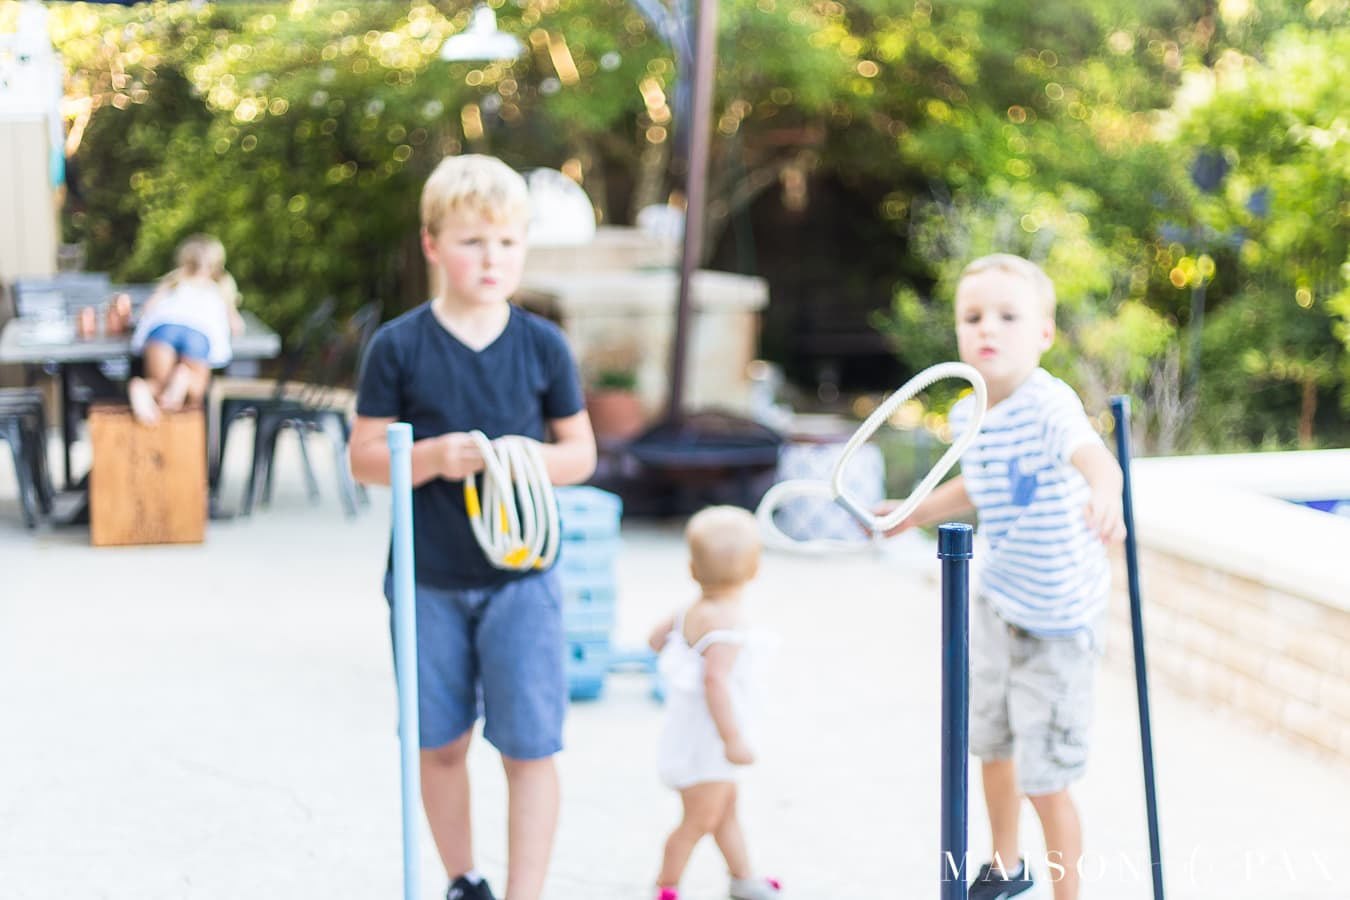 Make giant ring toss with your kids: find this and other family projects plus tips for completing project with kids! #familyfun #familyproject #outdoorgames #kidfriendlyproject #diyproject #yardgames